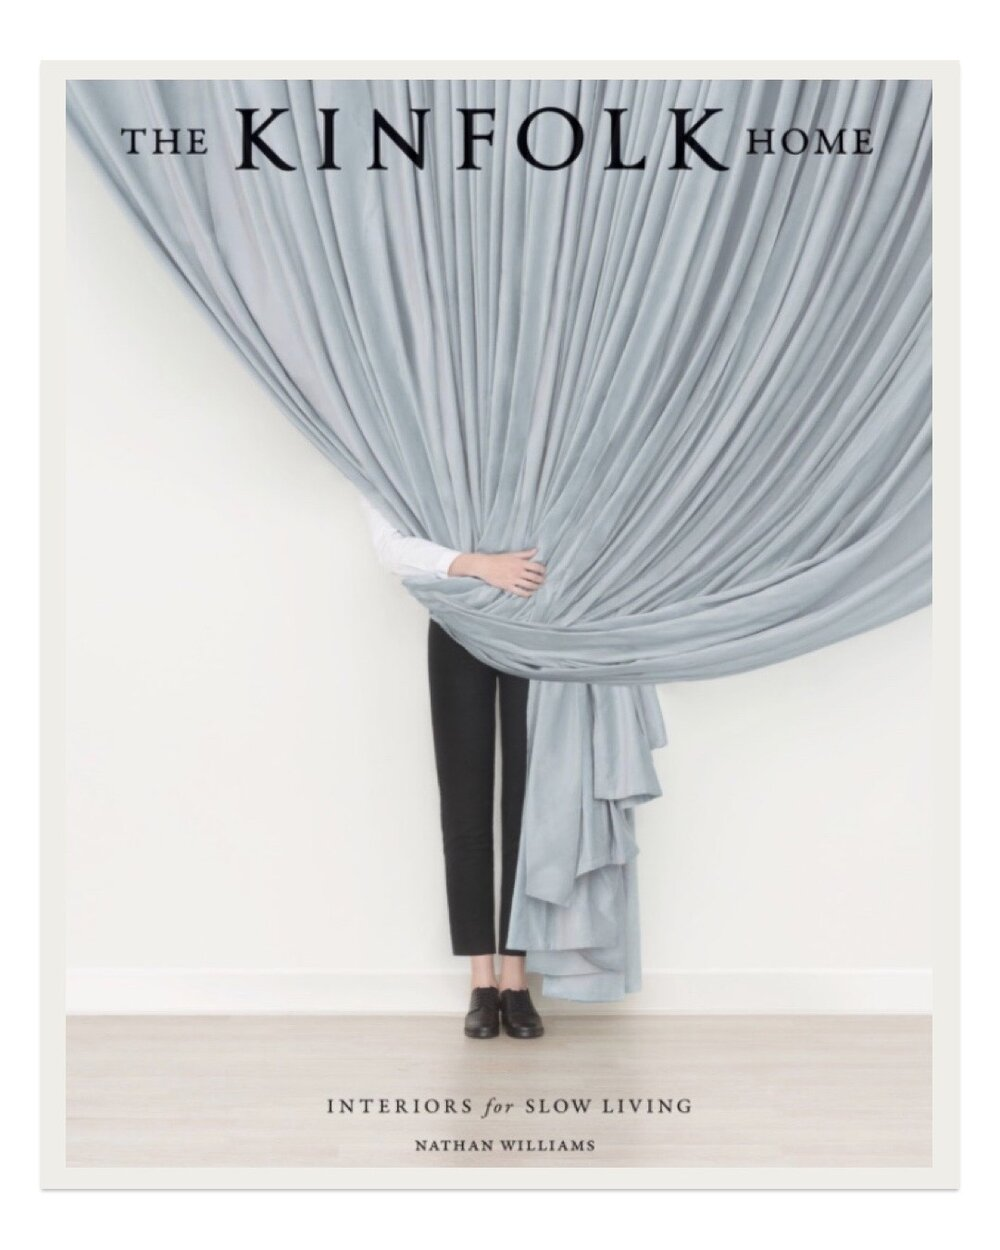 Creating a peaceful environment is key to reducing stress in our daily lives. The Kinfolk style evokes no nonsense slow living in simply sophisticated way that is so inspiring. I love the purposeful decorating and attention to handmade items found in this book.